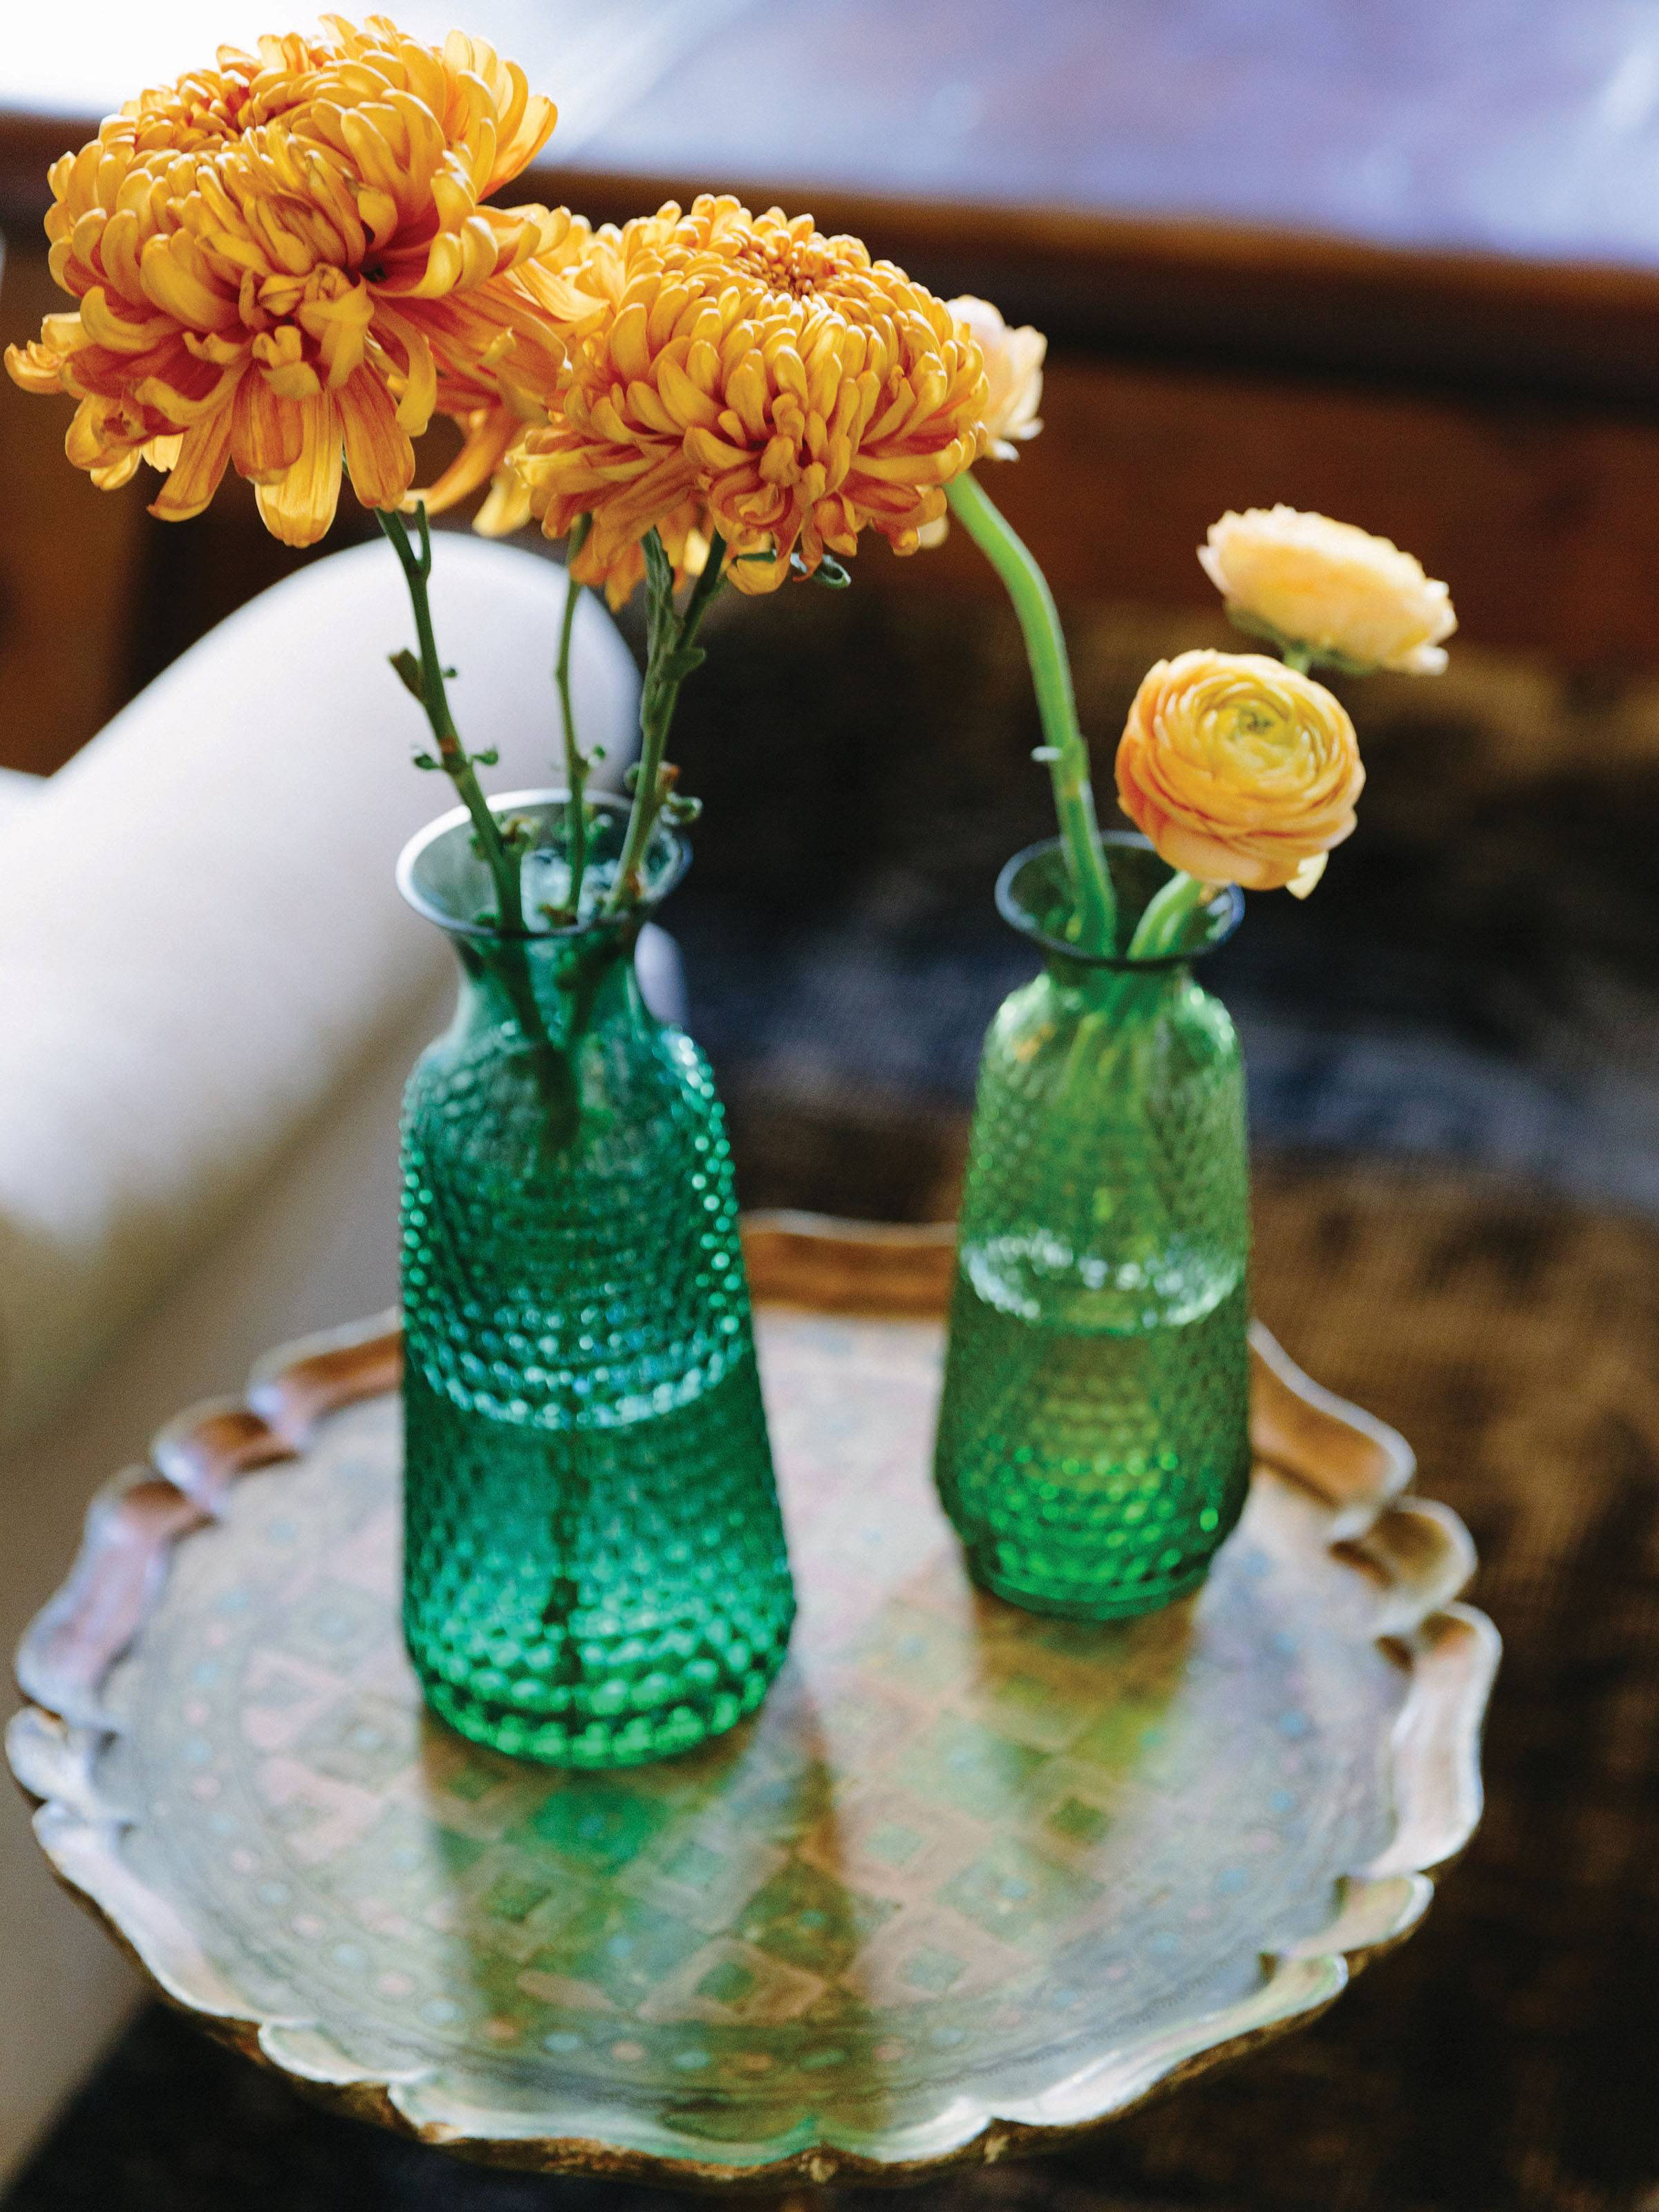 Vintage emerald green vases with orange and yellow flowers